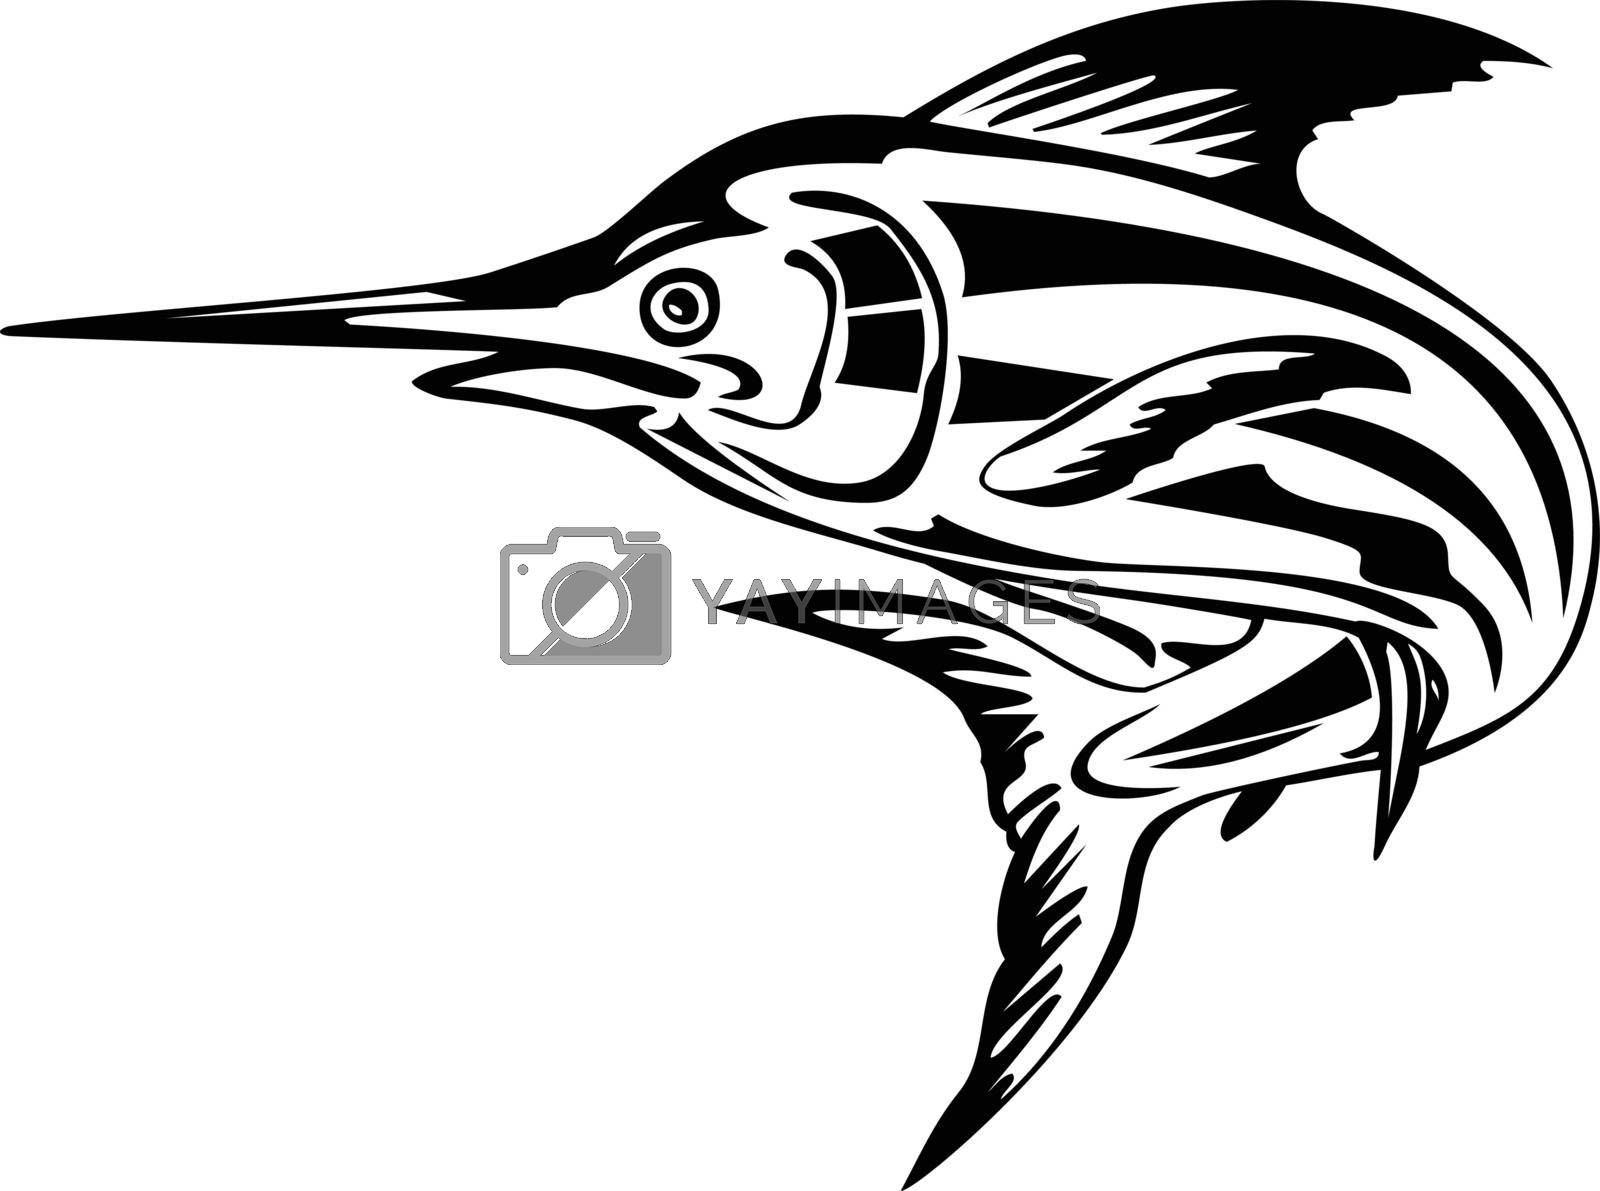 Retro style illustration of an Atlantic blue marlin, a species of marlin endemic to the Atlantic Ocean, swimming and jumping upward done in black and white on isolated background.